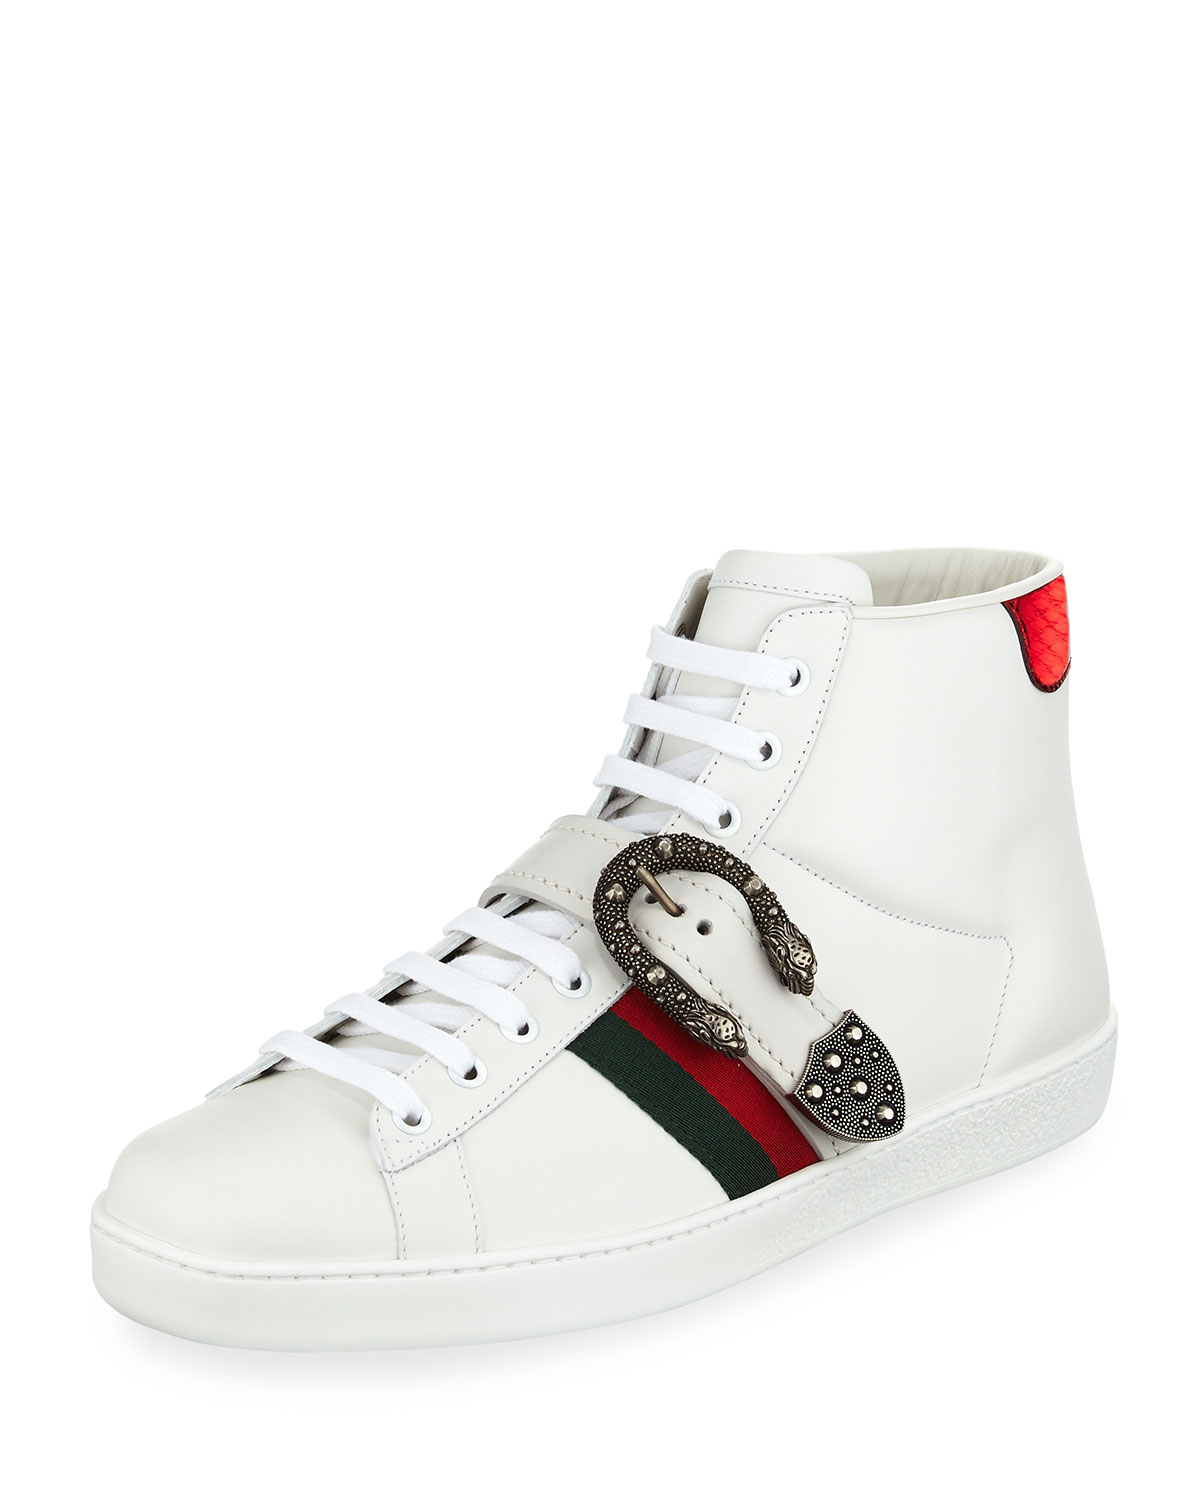 a5375b44d36 Gucci Men s Ace High-Top Sneakers with Dionysus Buckle